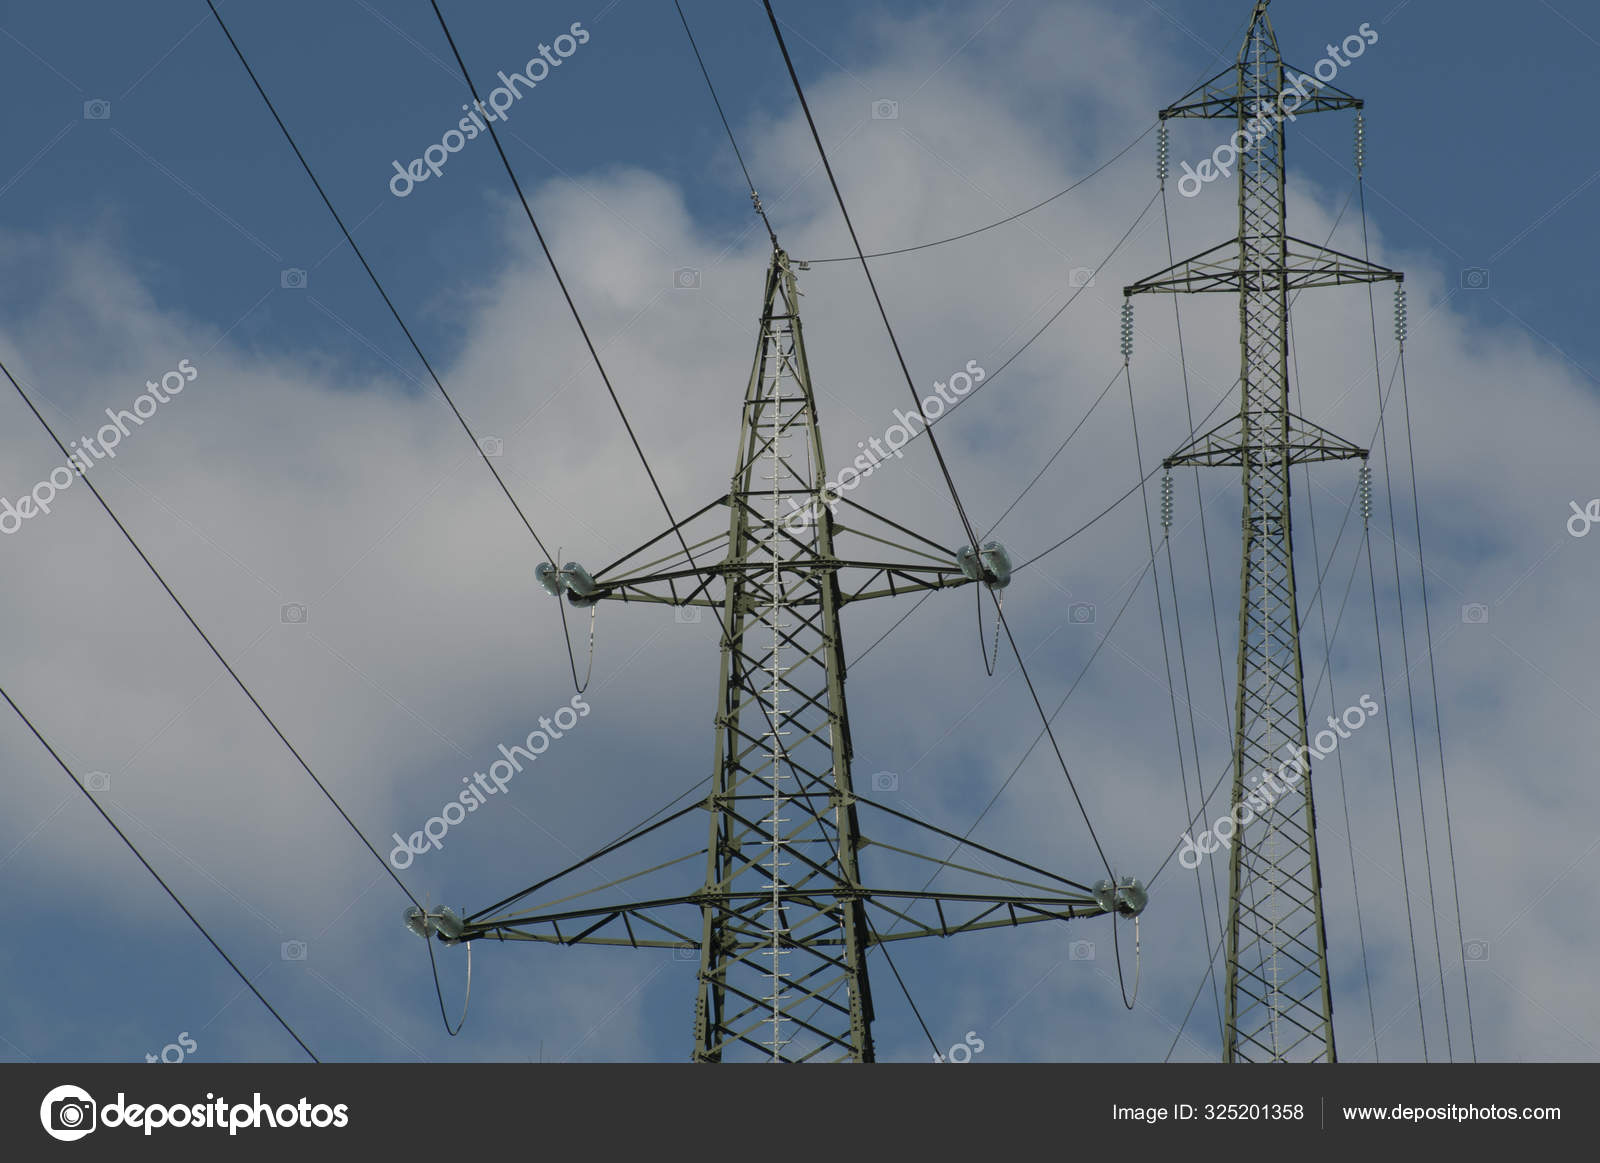 depositphotos_325201358-stock-photo-two-pillars-of-transmission-lines.jpg?profile=RESIZE_400x